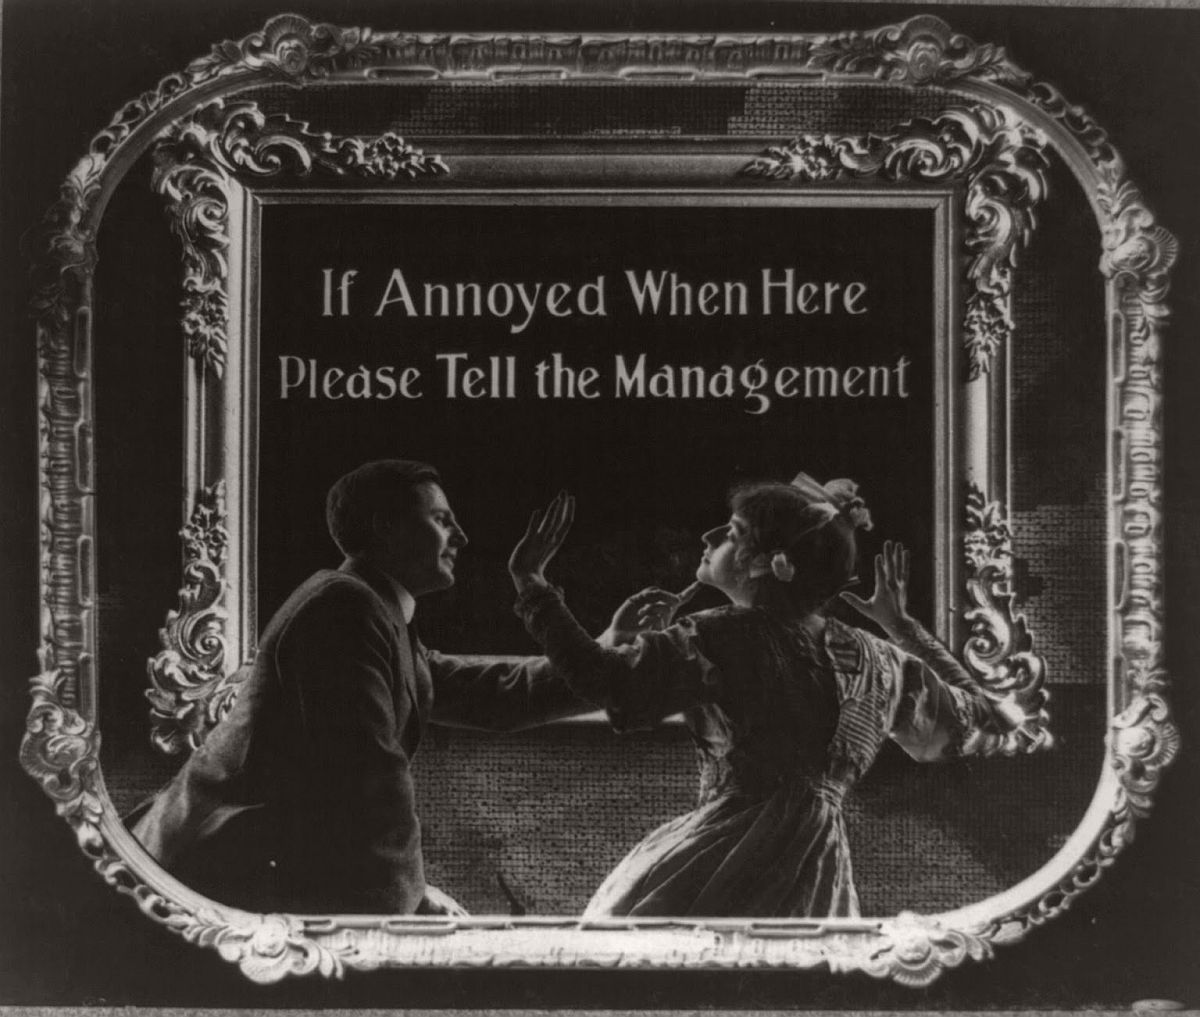 movie-theatre-etiquette-posters-from-1912-08